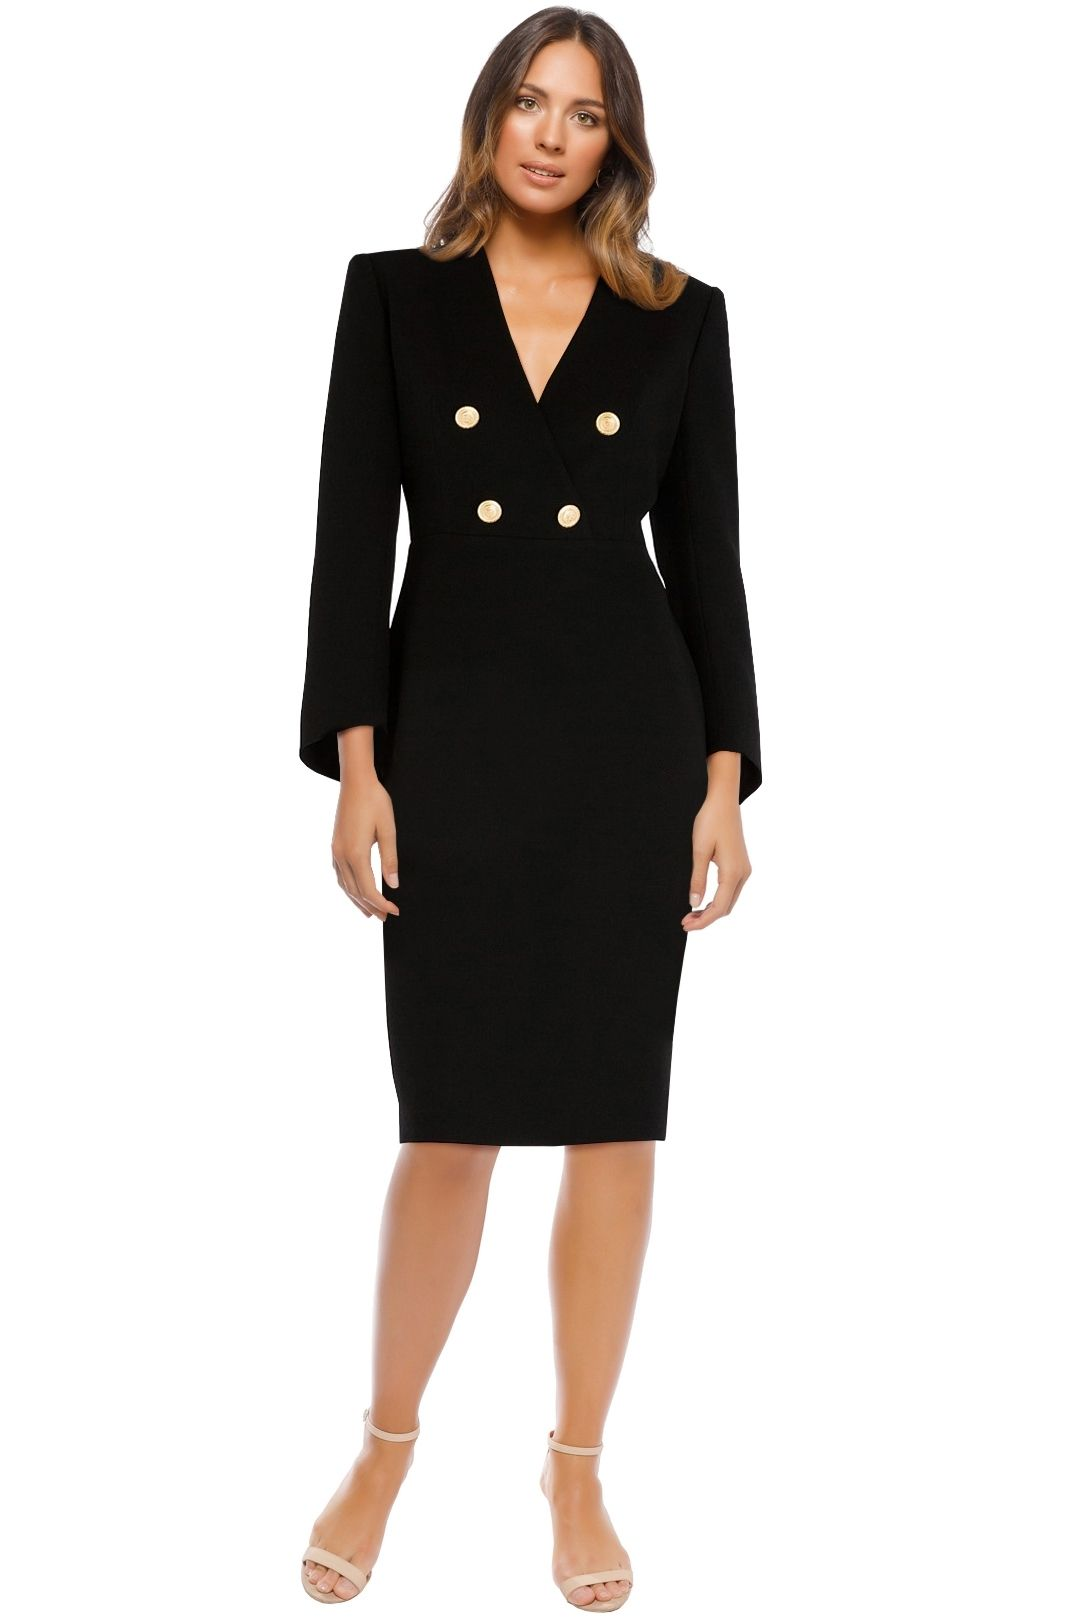 Carla Zampatti - Onyx Military Precision Dress - Black - Front